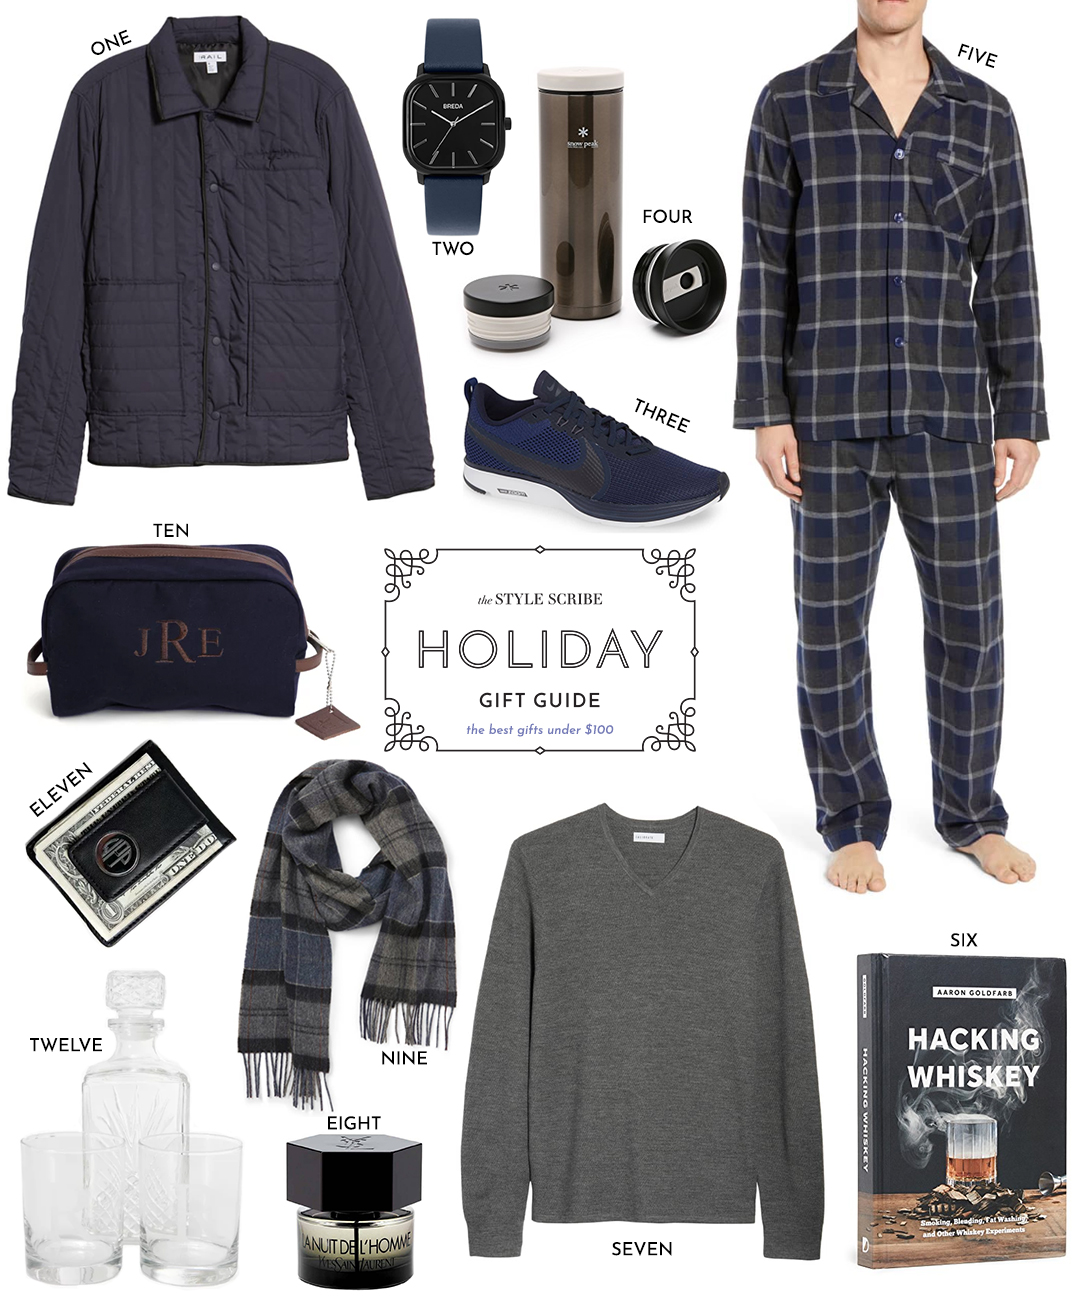 HOLIDAY GIFT GUIDE // FOR HIM UNDER $100